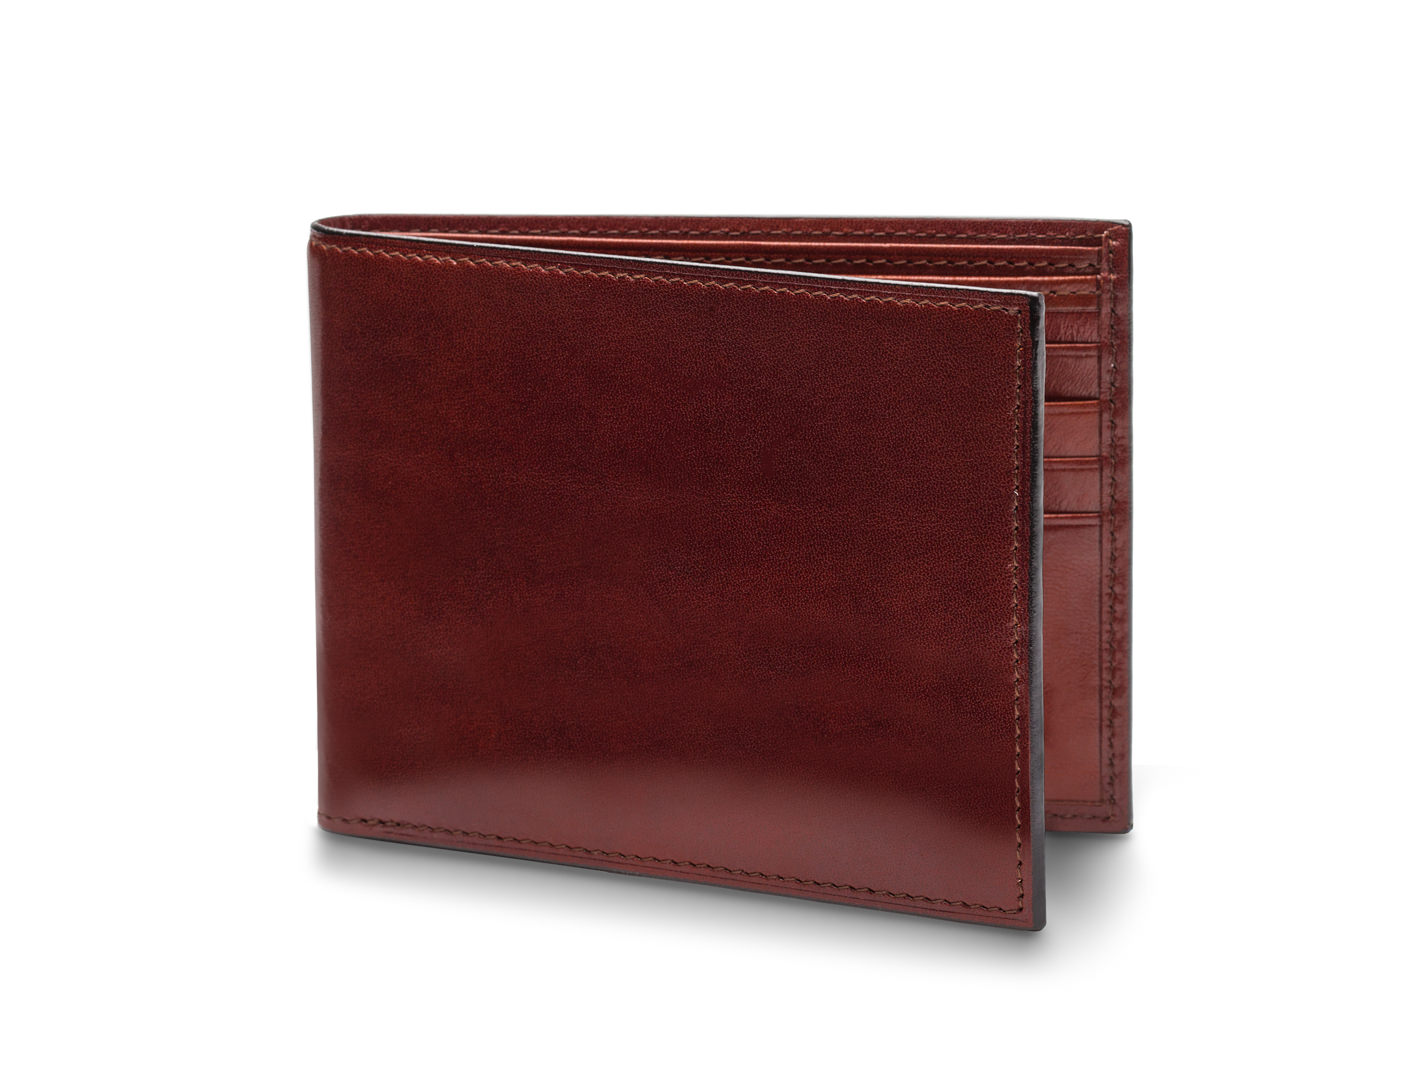 8 Pocket Wallet - 58 Dark Brown